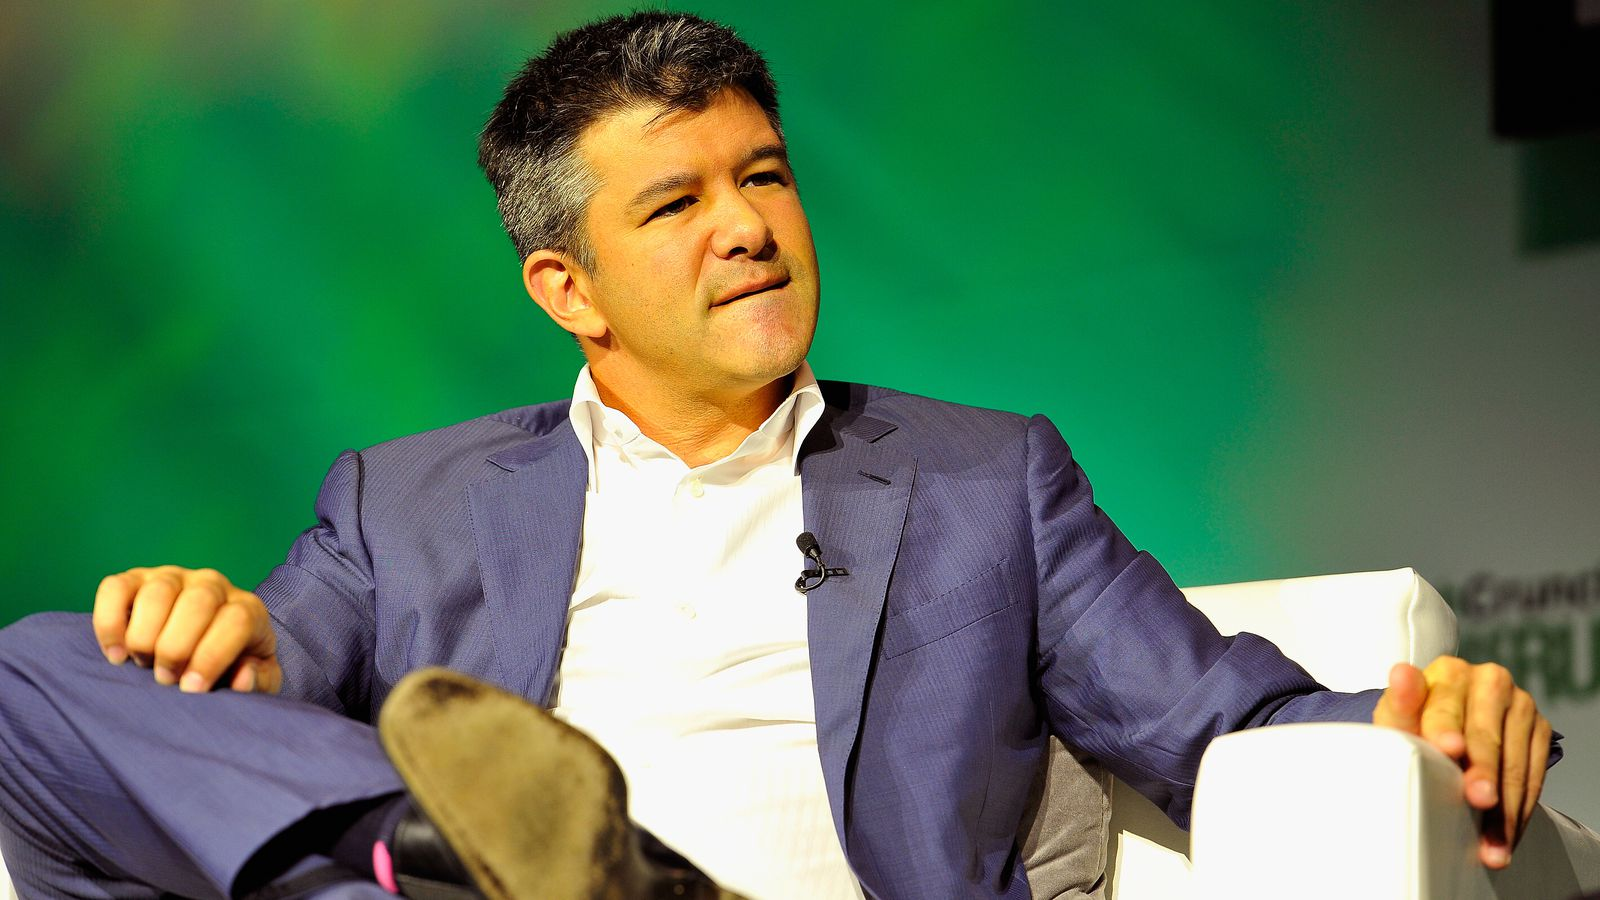 Uber's Board Continues to Bicker Over CEO Choice, as it Gathers Tomorrow in Continued Selection Effort